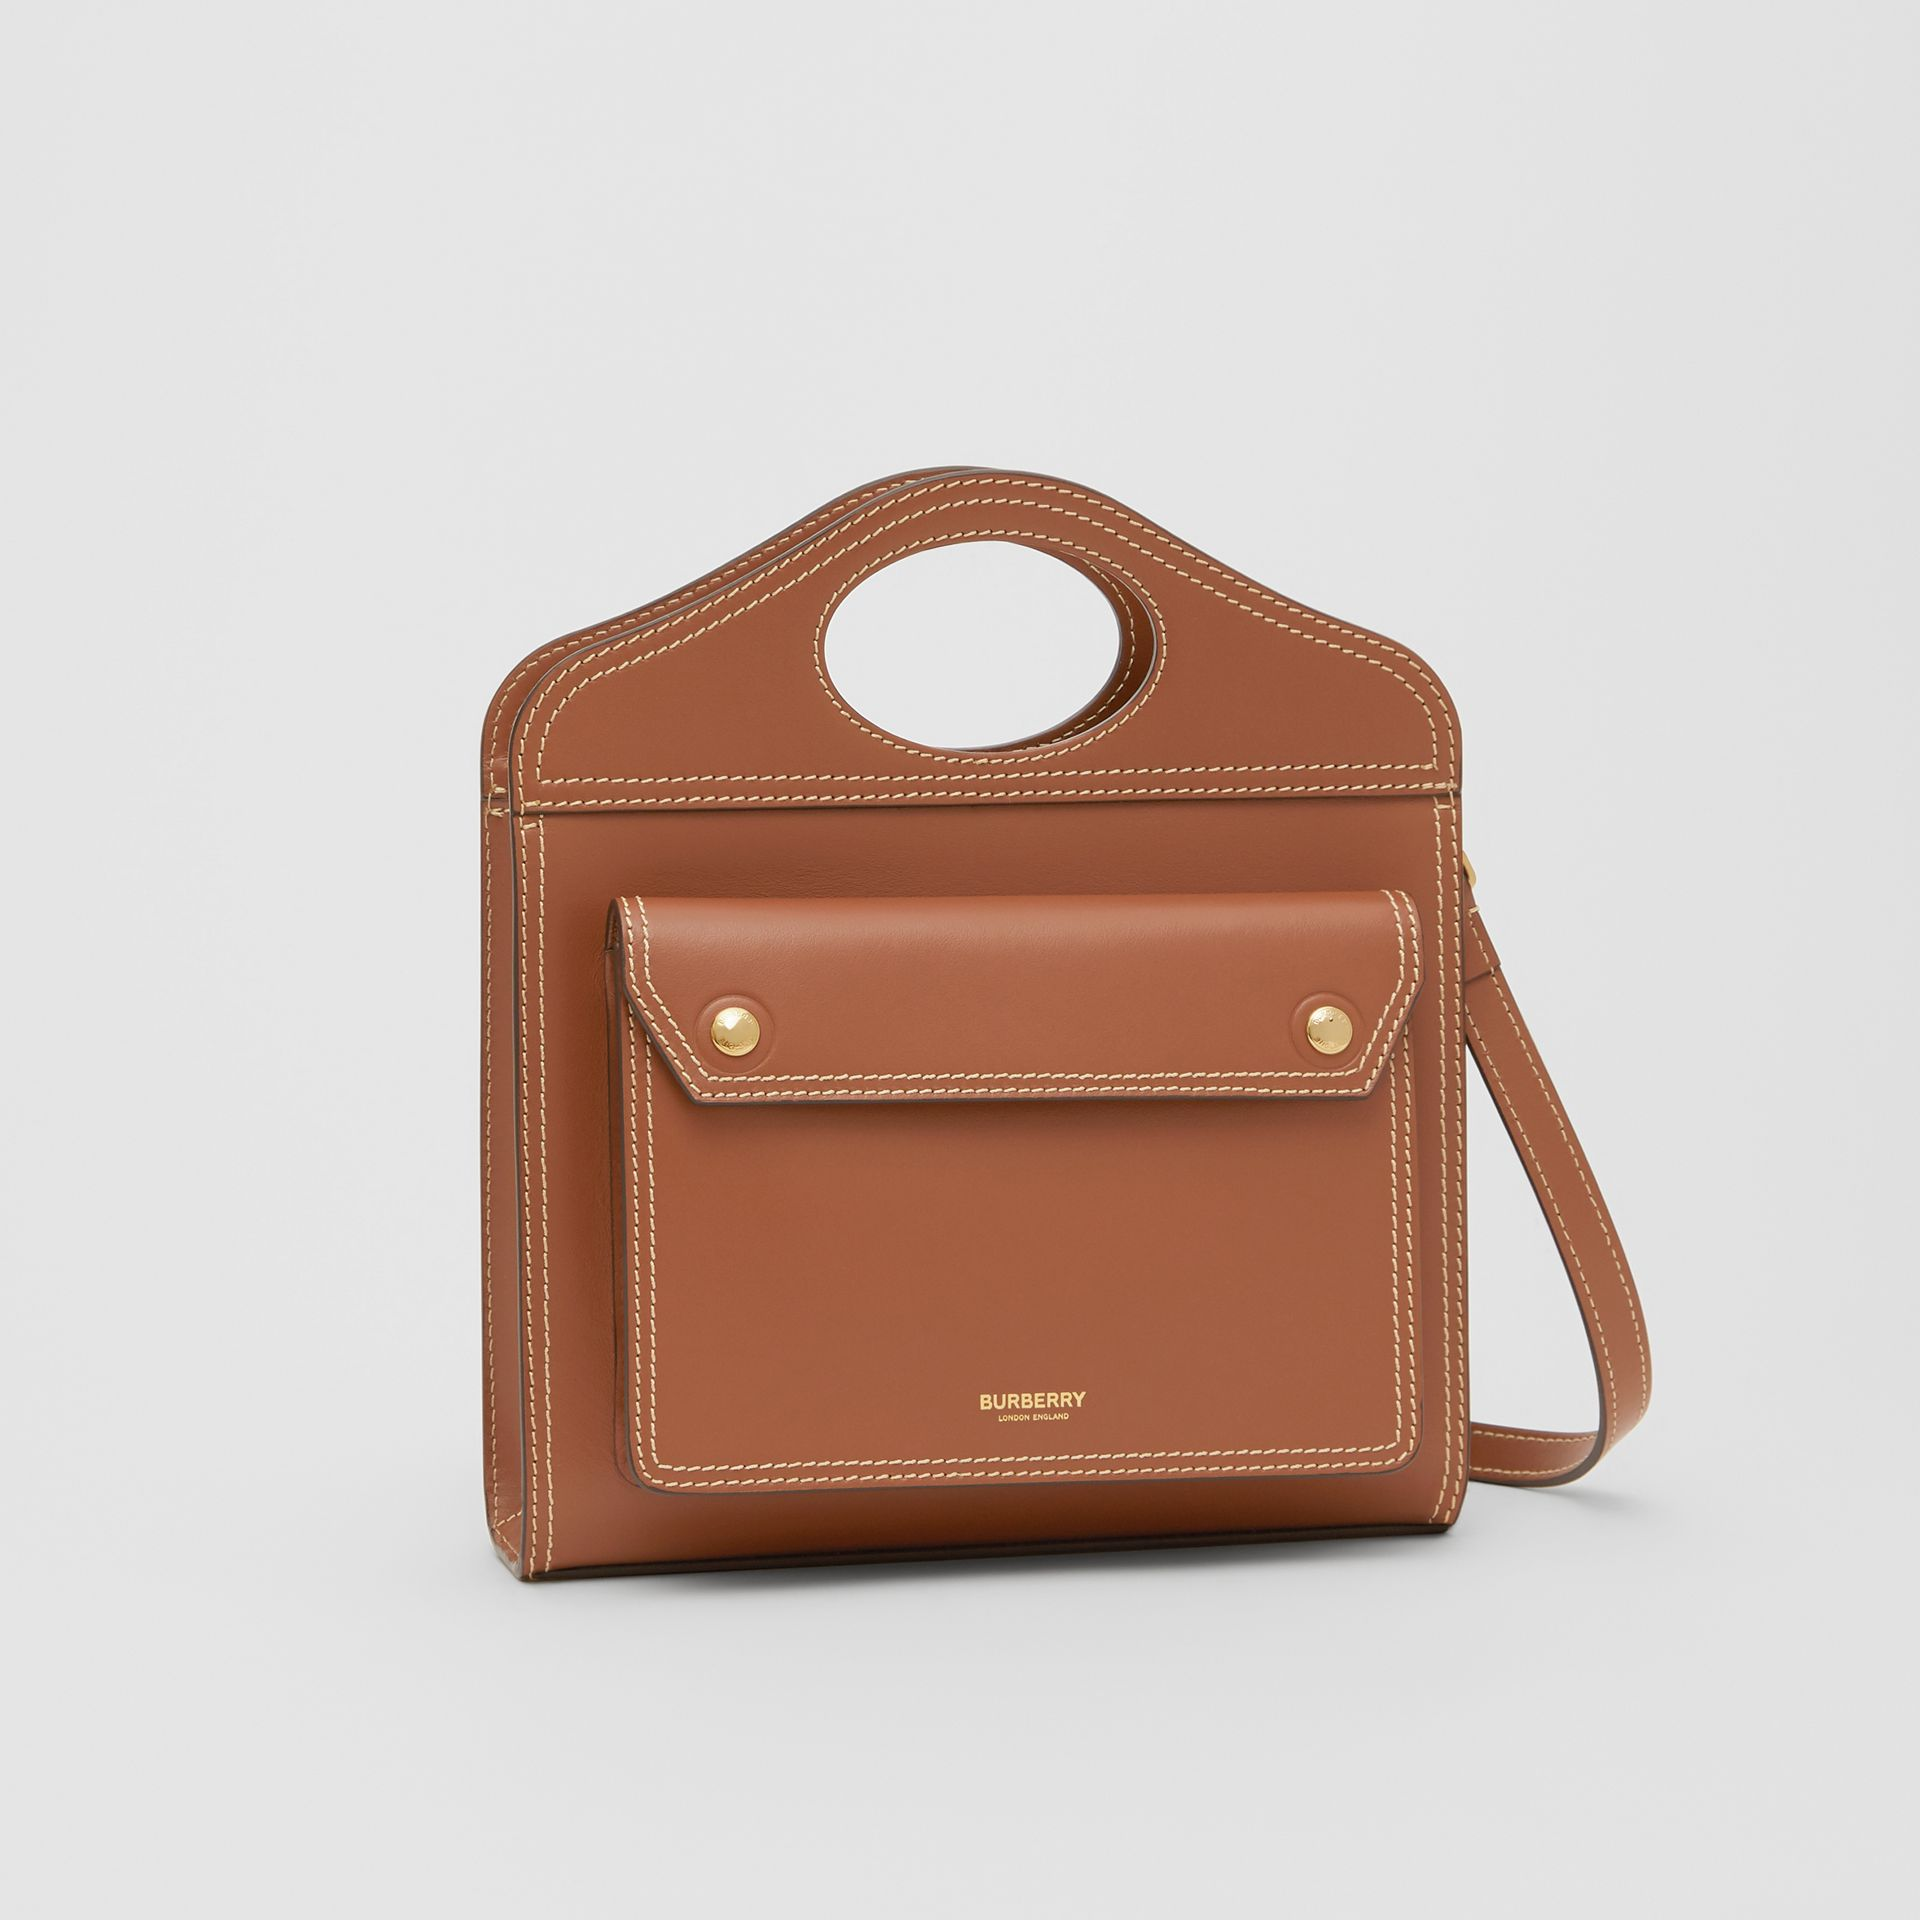 Mini Topstitch Detail Leather Pocket Bag in Malt Brown - Women | Burberry - gallery image 5